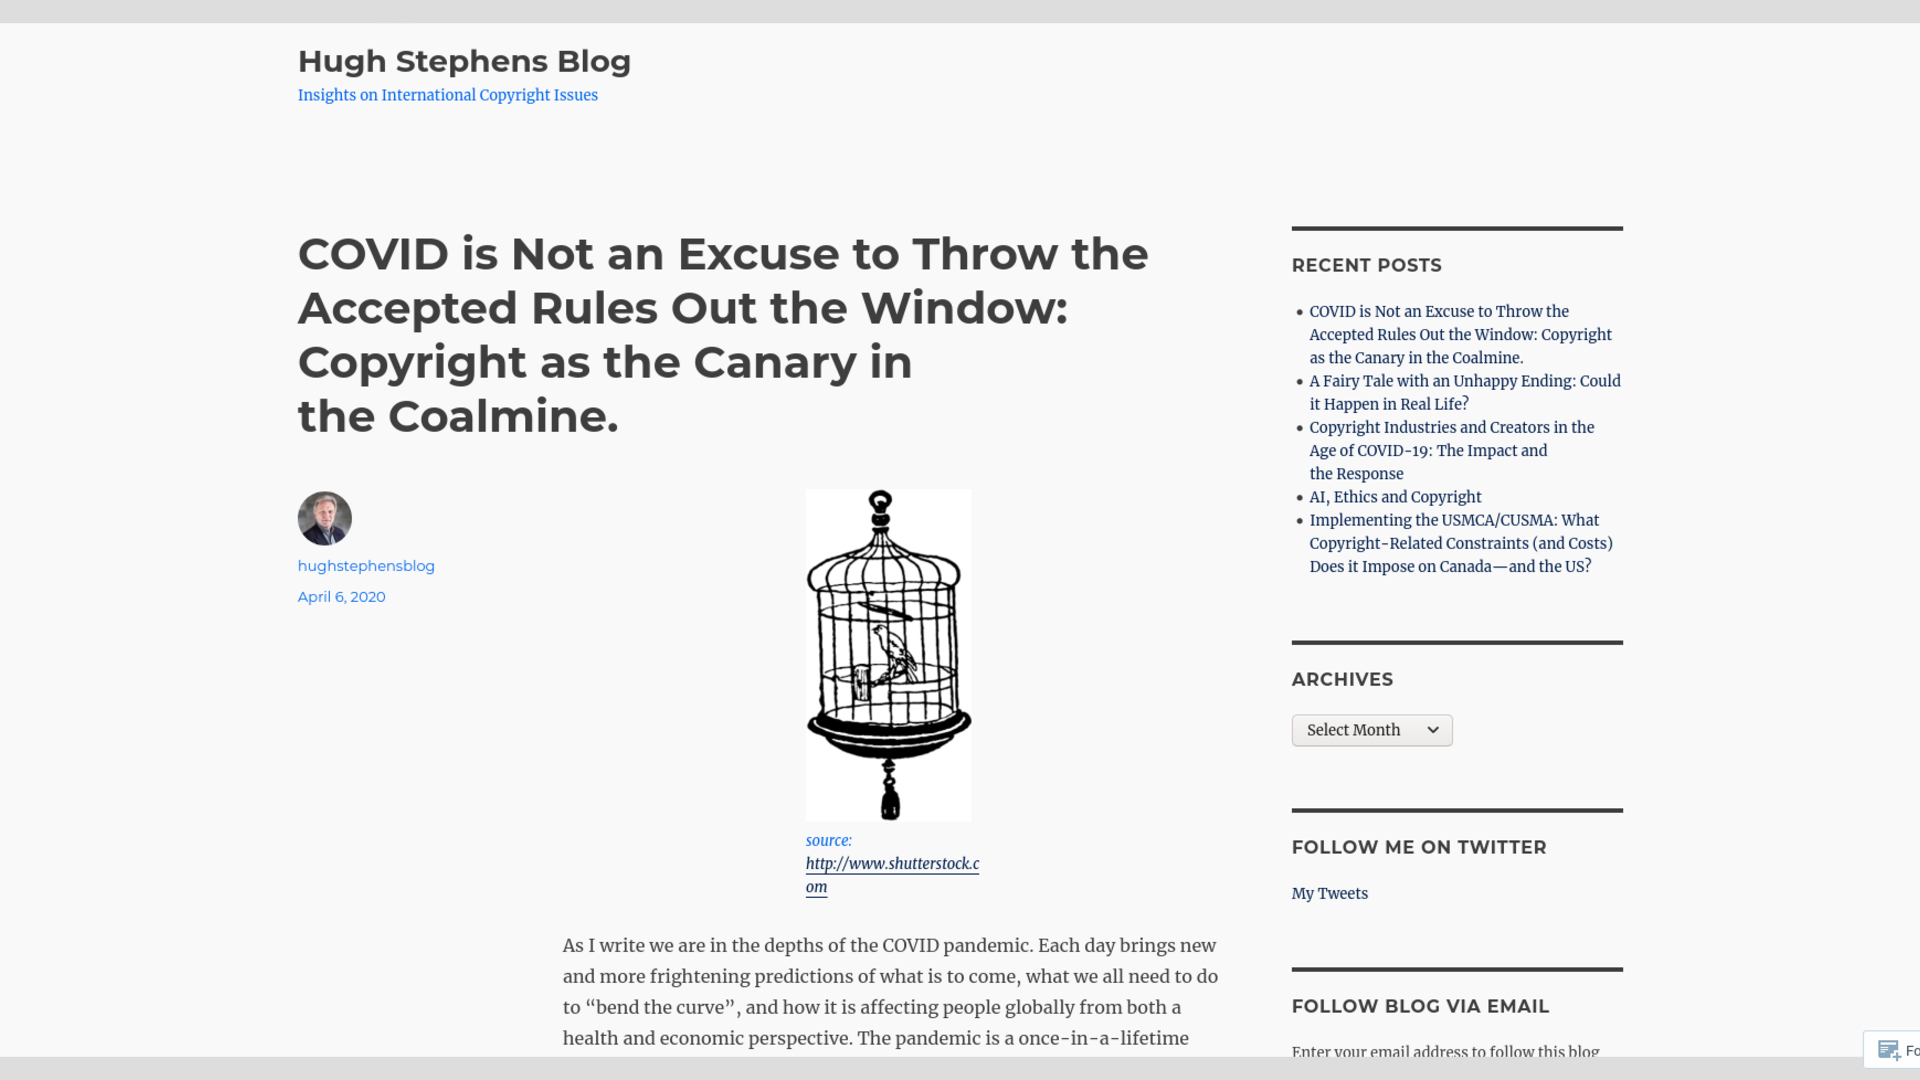 Fairness Rocks News COVID is Not an Excuse to Throw the Accepted Rules Out the Window: Copyright as the Canary in the Coalmine.